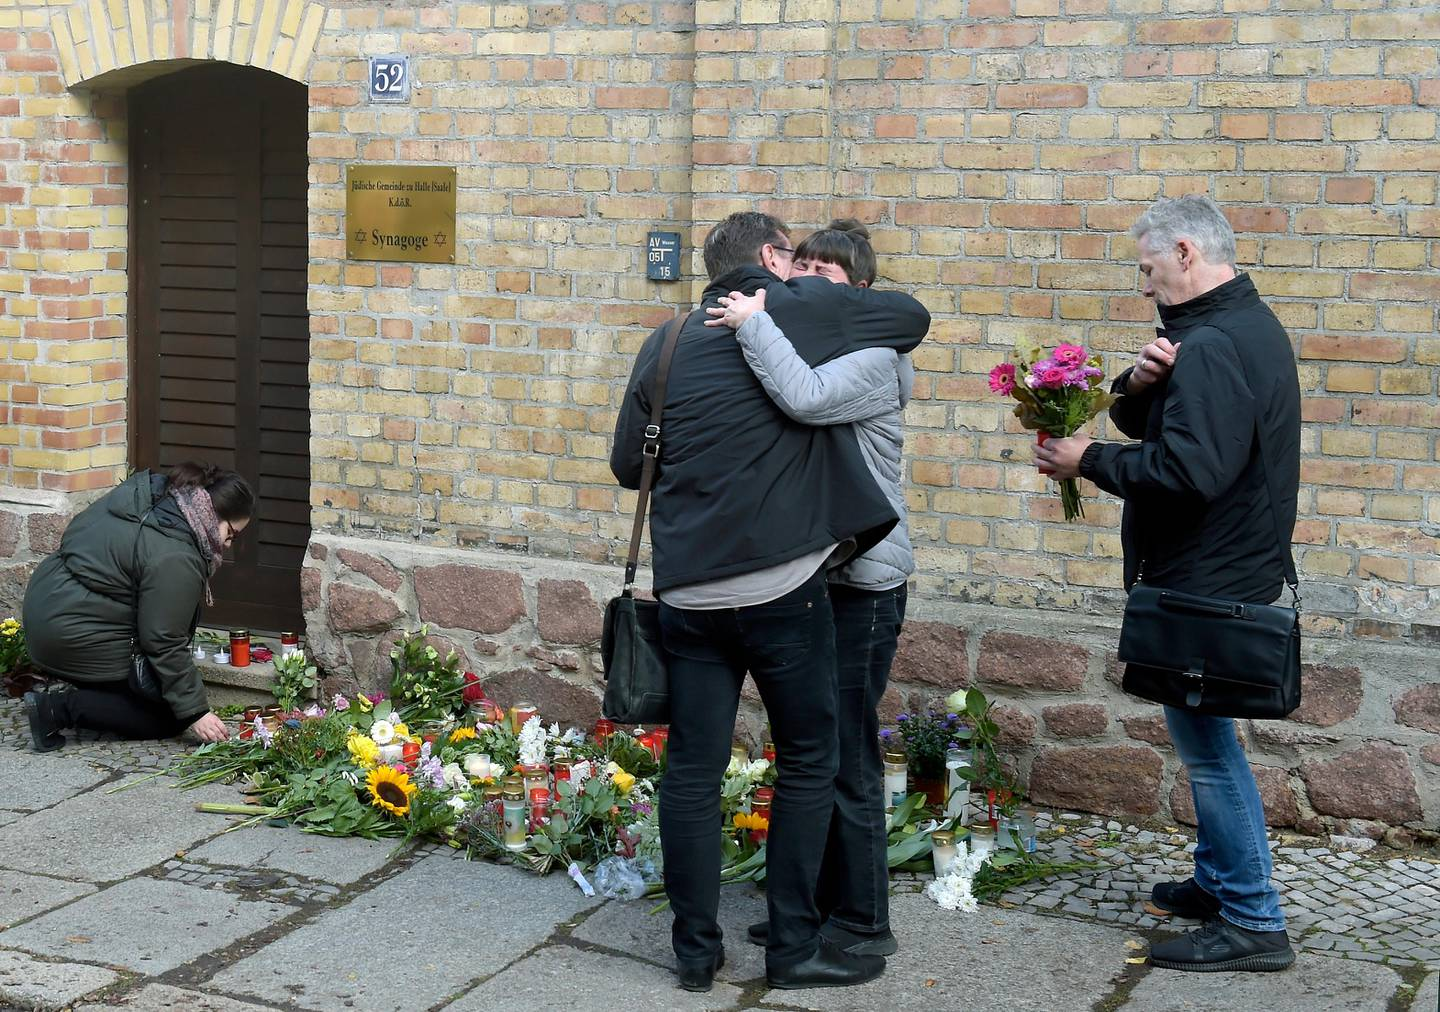 People mourn in front of a synagogue in Halle, Germany, Thursday, Oct. 10, 2019. A heavily armed assailant ranting about Jews tried to force his way into a synagogue in Germany on Yom Kippur, Judaism's holiest day, then shot two people to death nearby in an attack Wednesday that was livestreamed on a popular gaming site. (AP Photo/Jens Meyer)